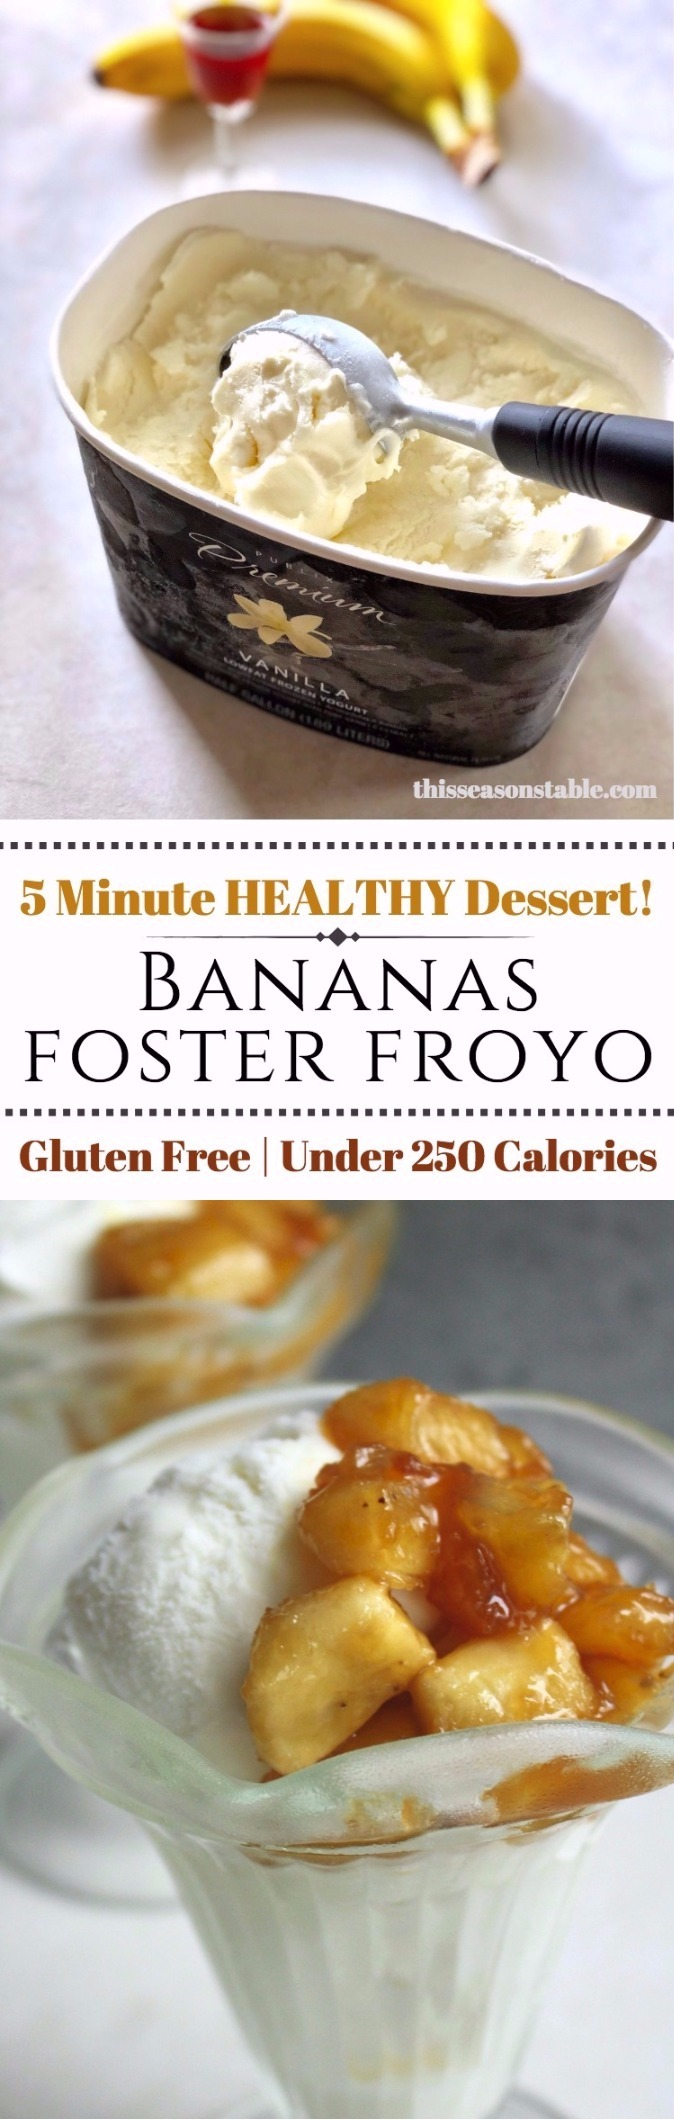 Enjoy the taste of decadent bananas foster without all the hassle! Done in 5 minutes and less than 250 calories for the perfect guilt free treat!